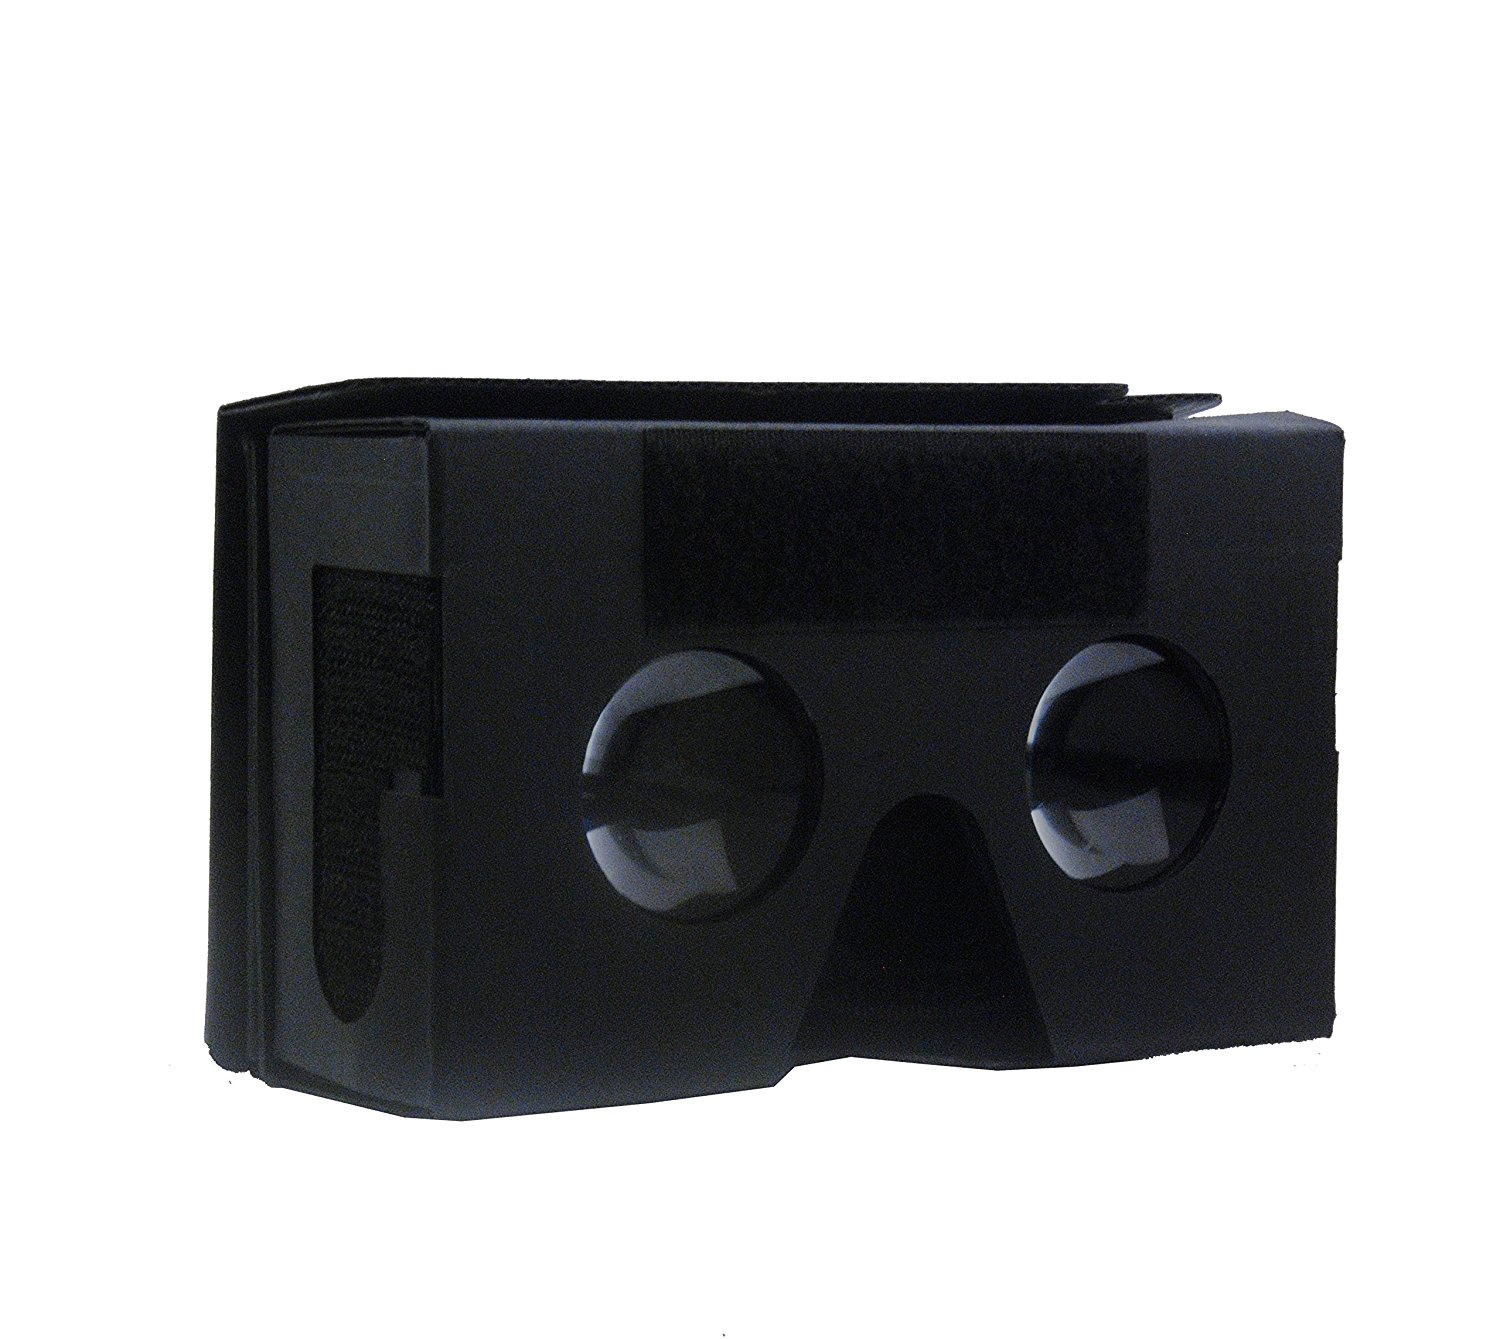 "3D VR Virtual Reality Headset 3D Glasses Adjust Cardboard VR BOX For 3.5~6.0"" Smartphones iPhone 6/6 plus Samsung Galaxy IOS Android Cellphones + Controller (Black+White)"